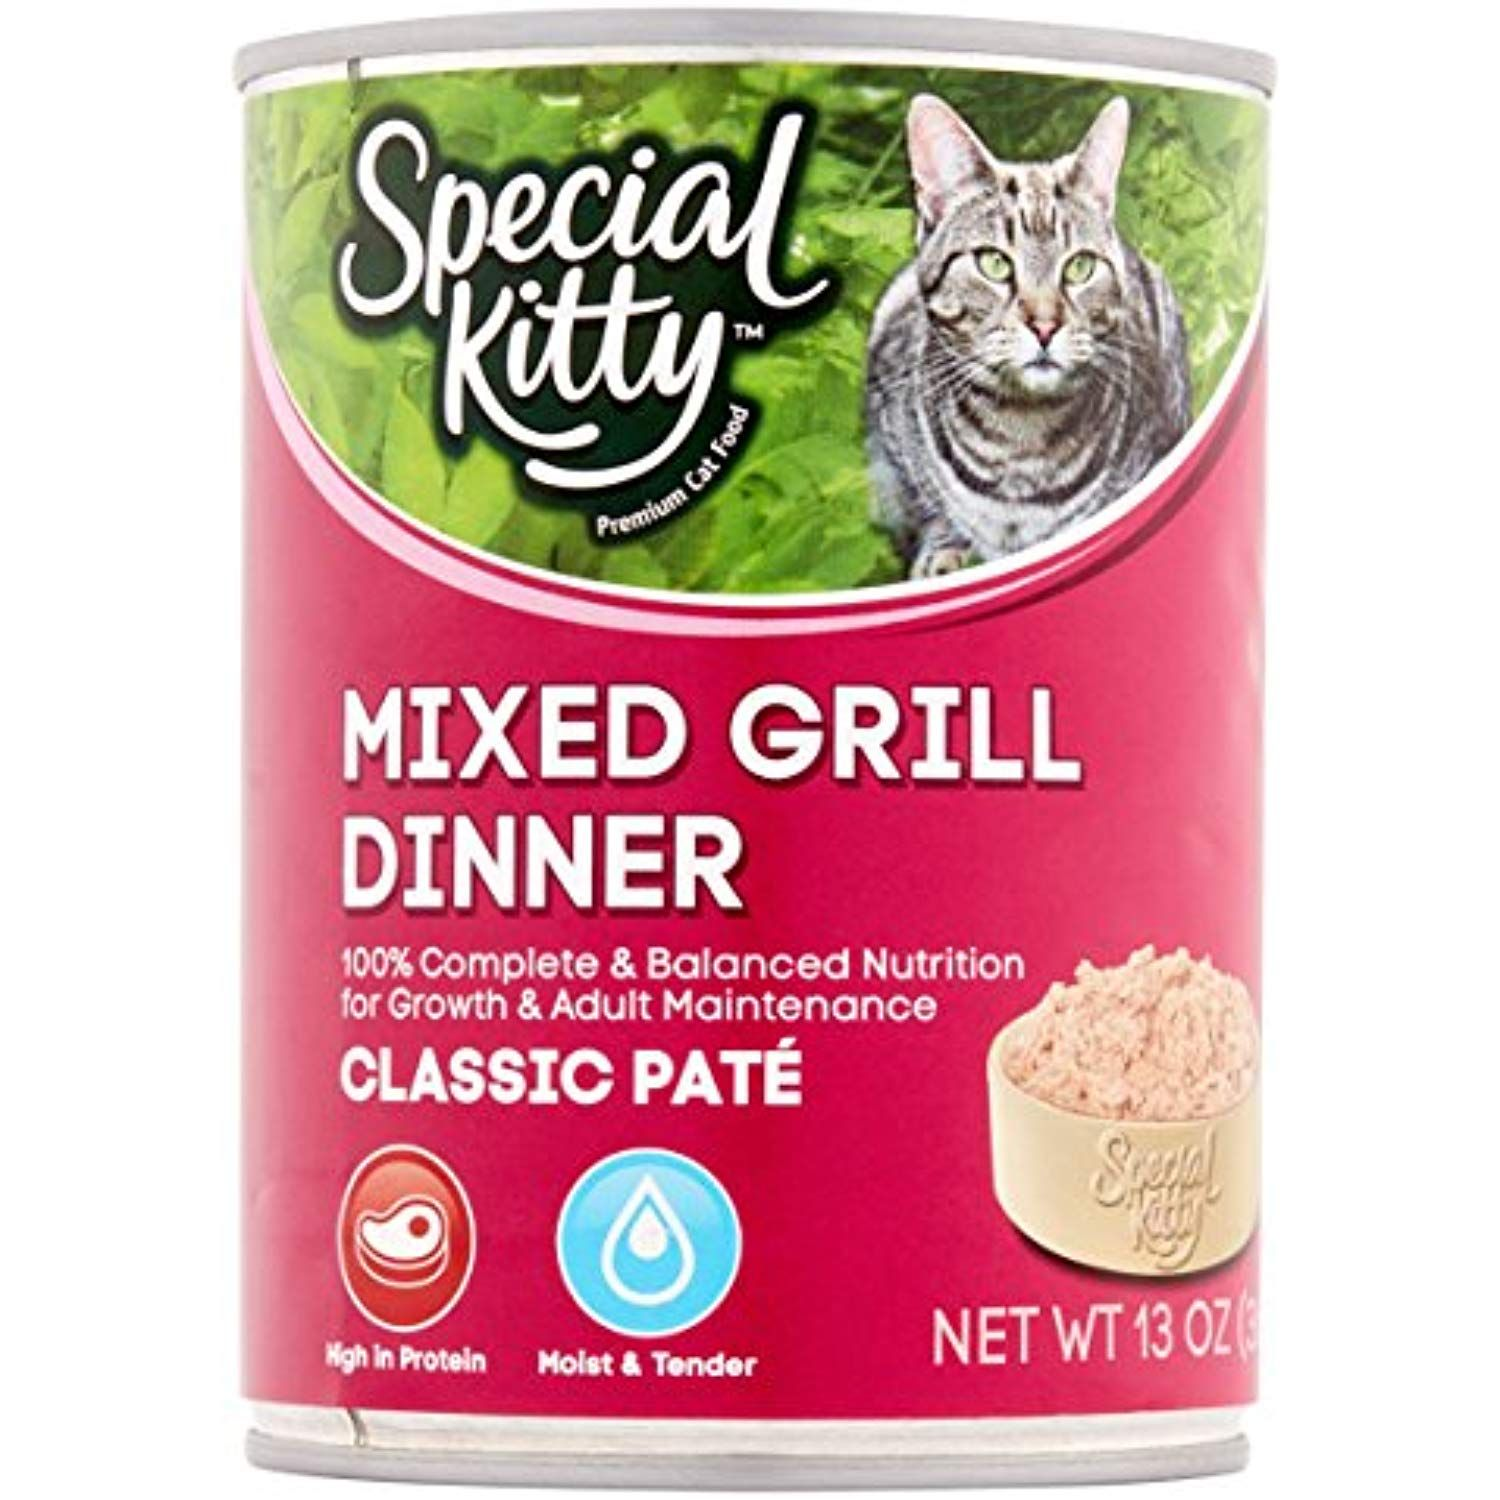 13oz Pack Of 24 Special Kitty Classic Pata C Mixed Grill Dinner Premium Cat Food Click On The Image For Additional Grilled Dinner Canned Cat Food Cat Food